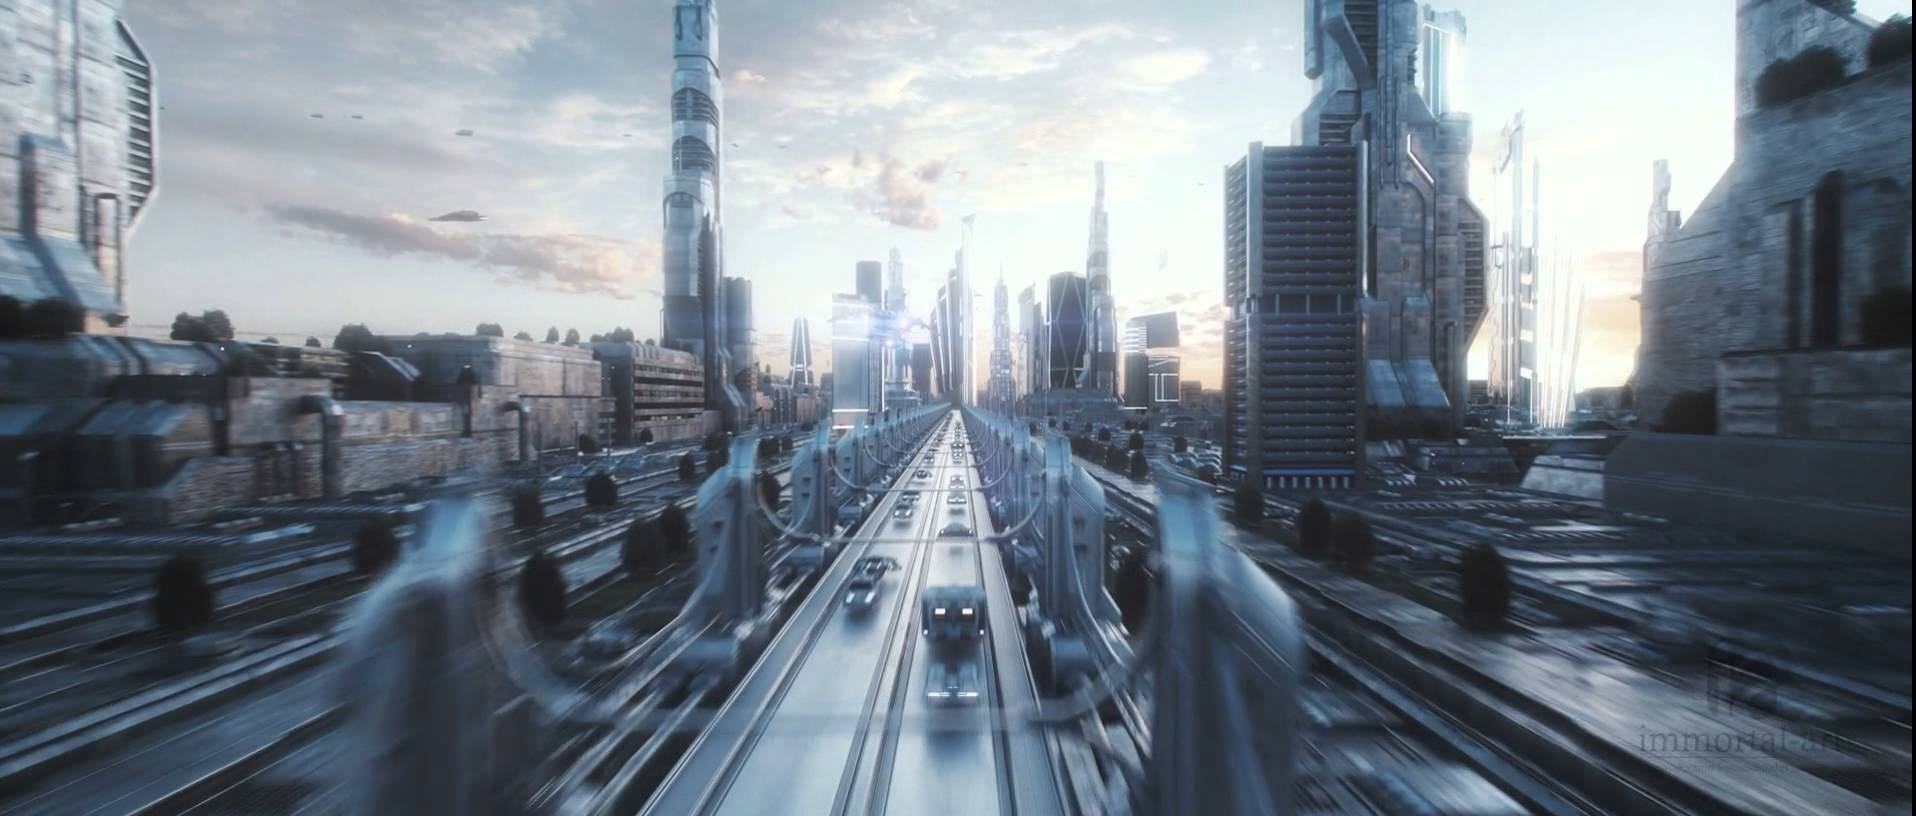 Nice wallpapers Future City 1916x816px